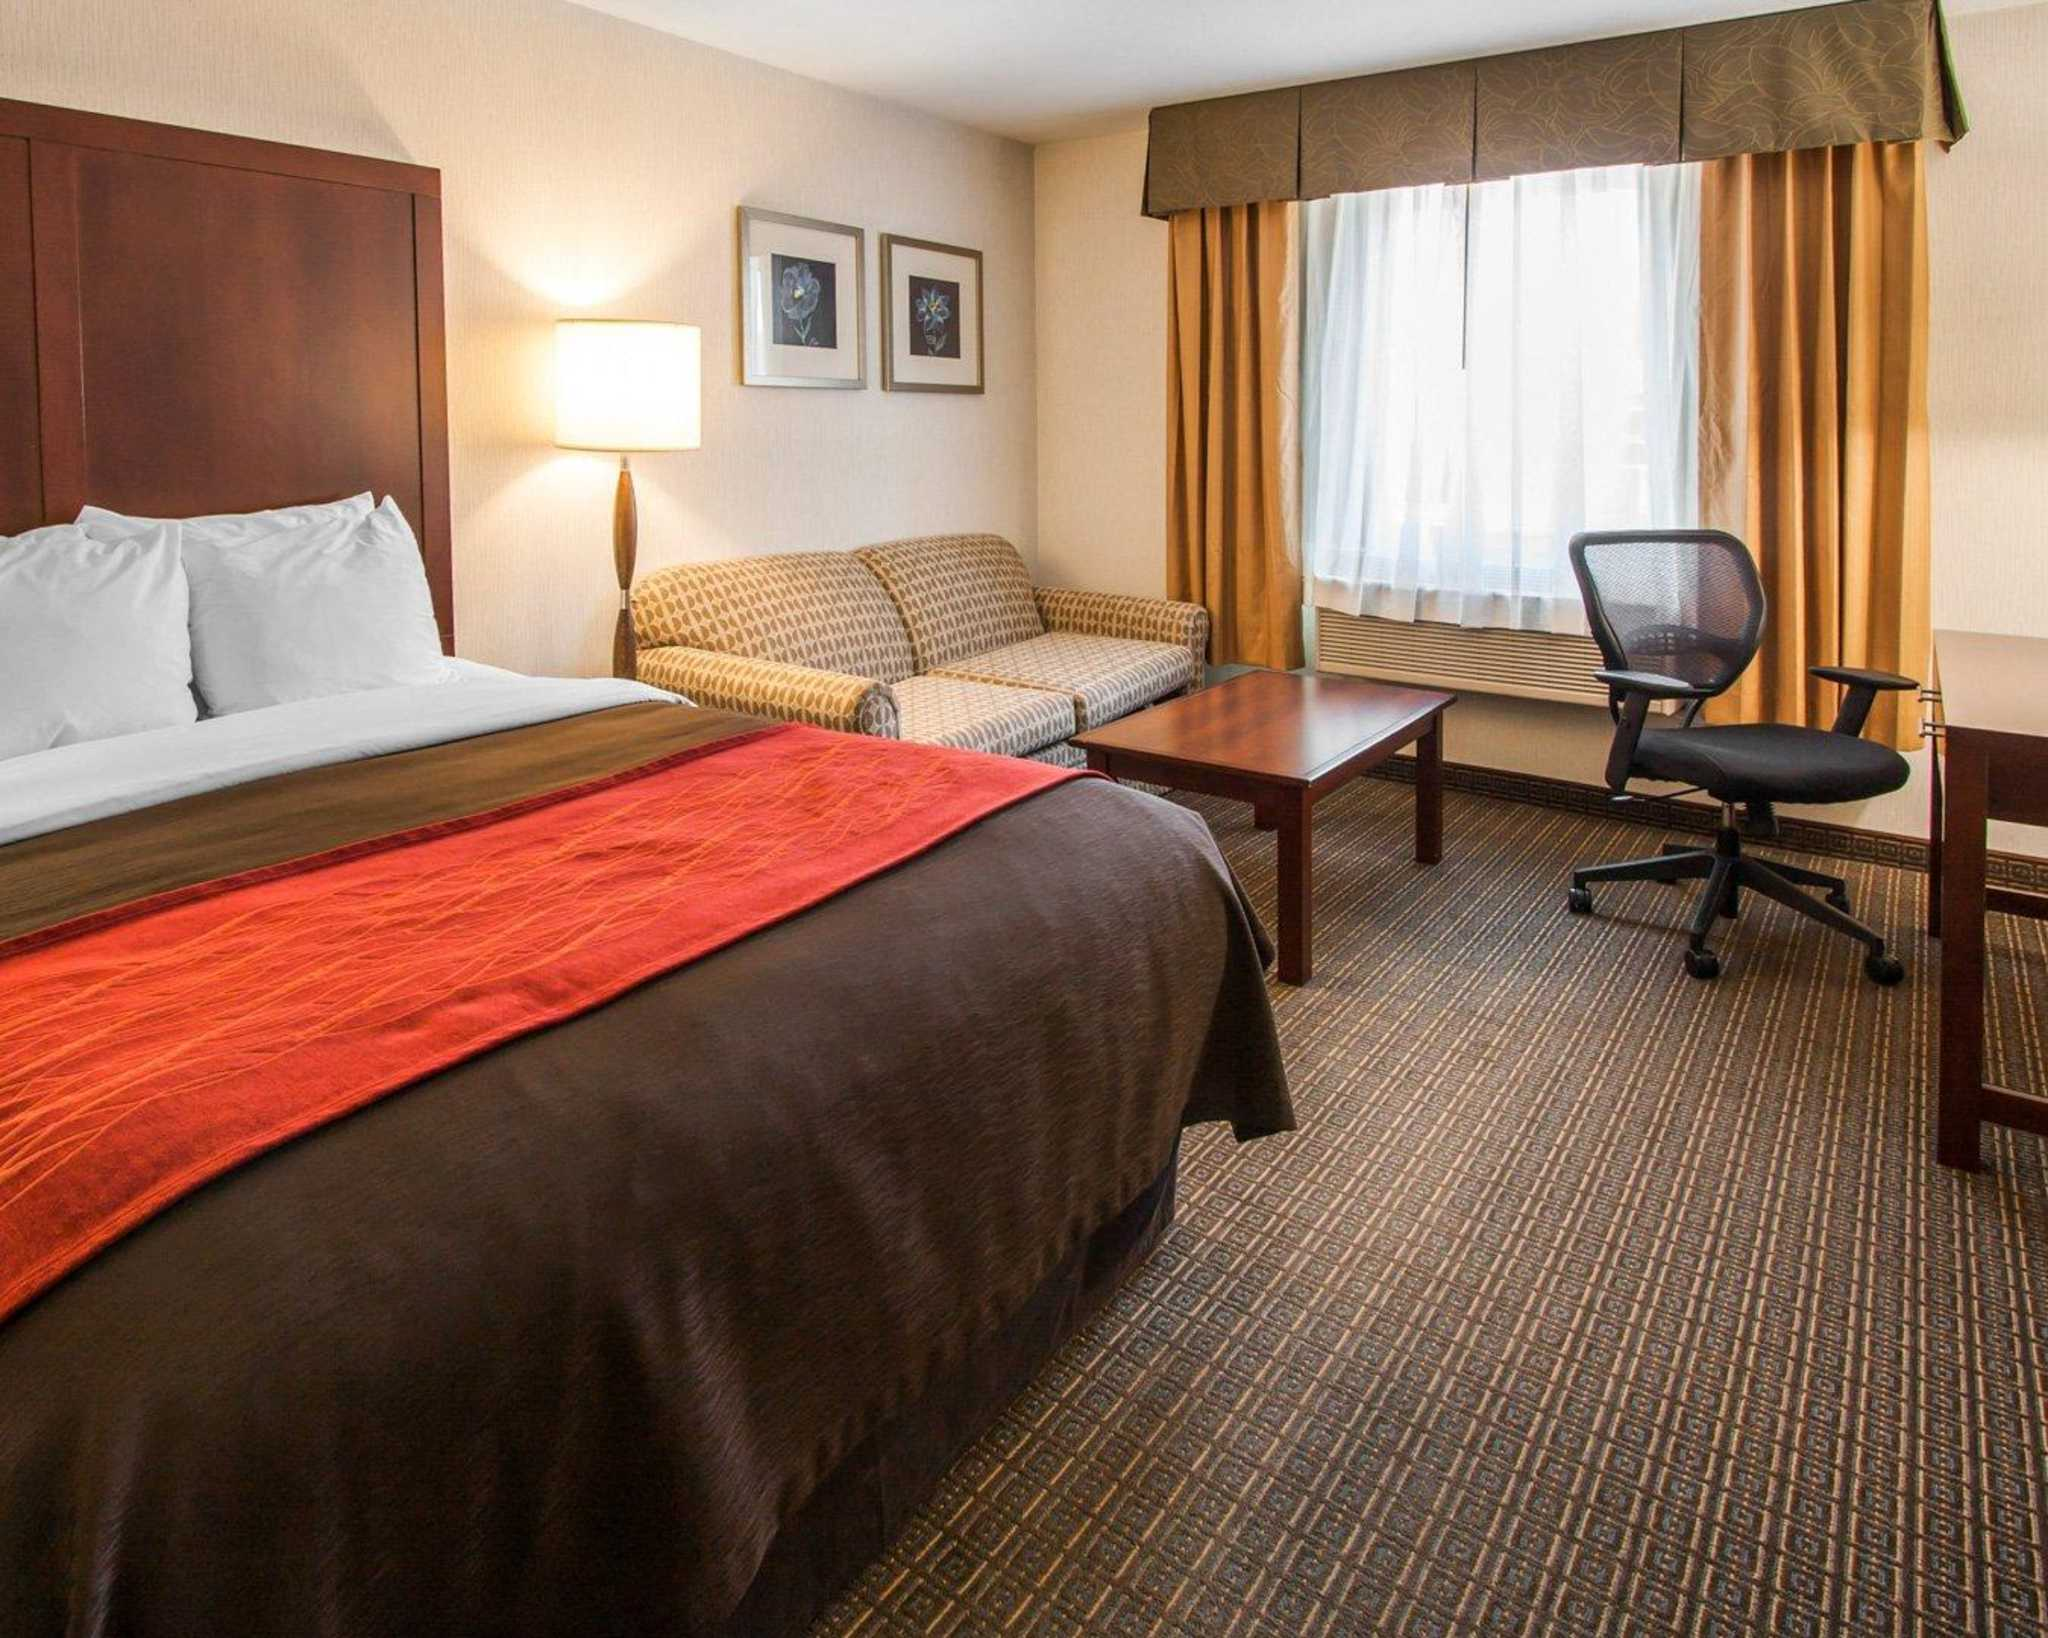 comfort portland booking property image of or inn gallery beaverton us suites this comforter oregon hotel com